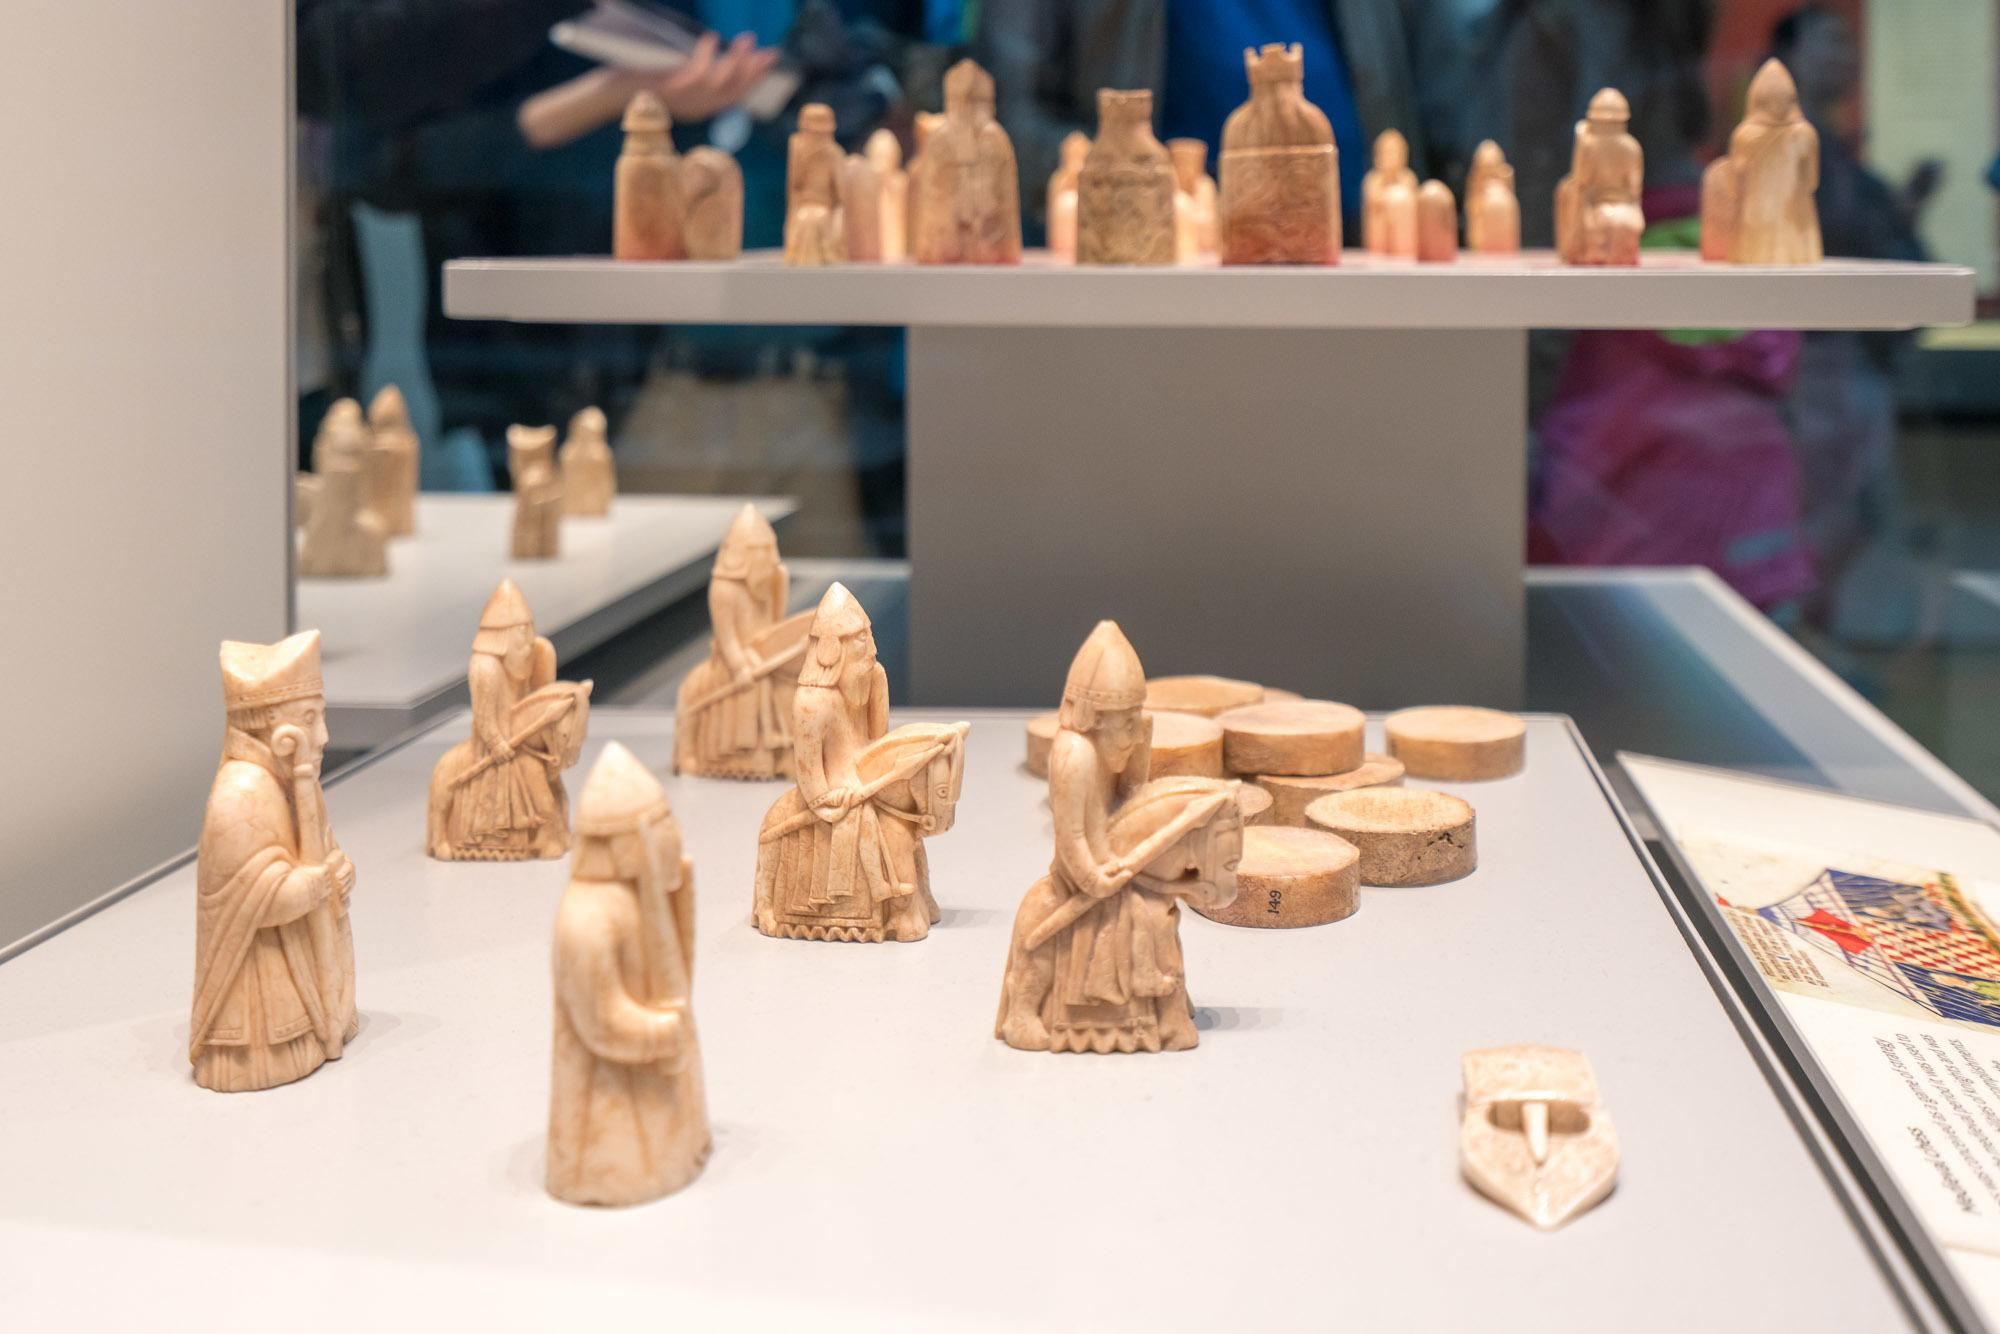 Kids will love the Lewis Chessmen at the British Museum, most famous chess sets in the world.